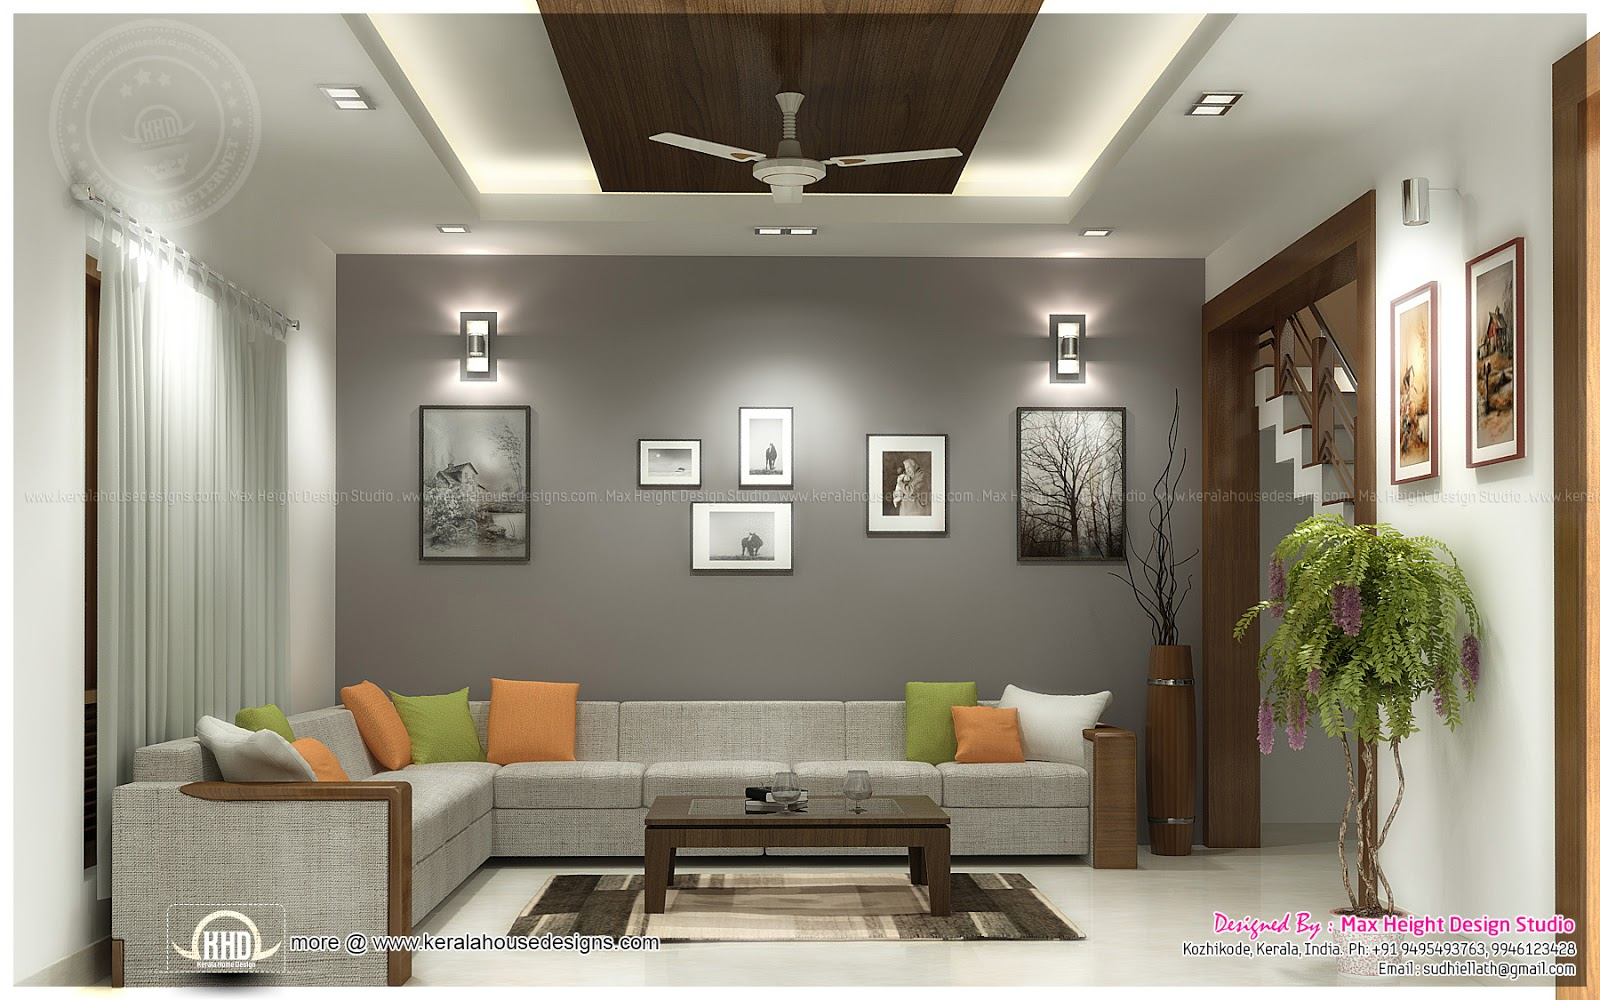 Beautiful interior ideas for home kerala home design and floor plans Interior designing of your home